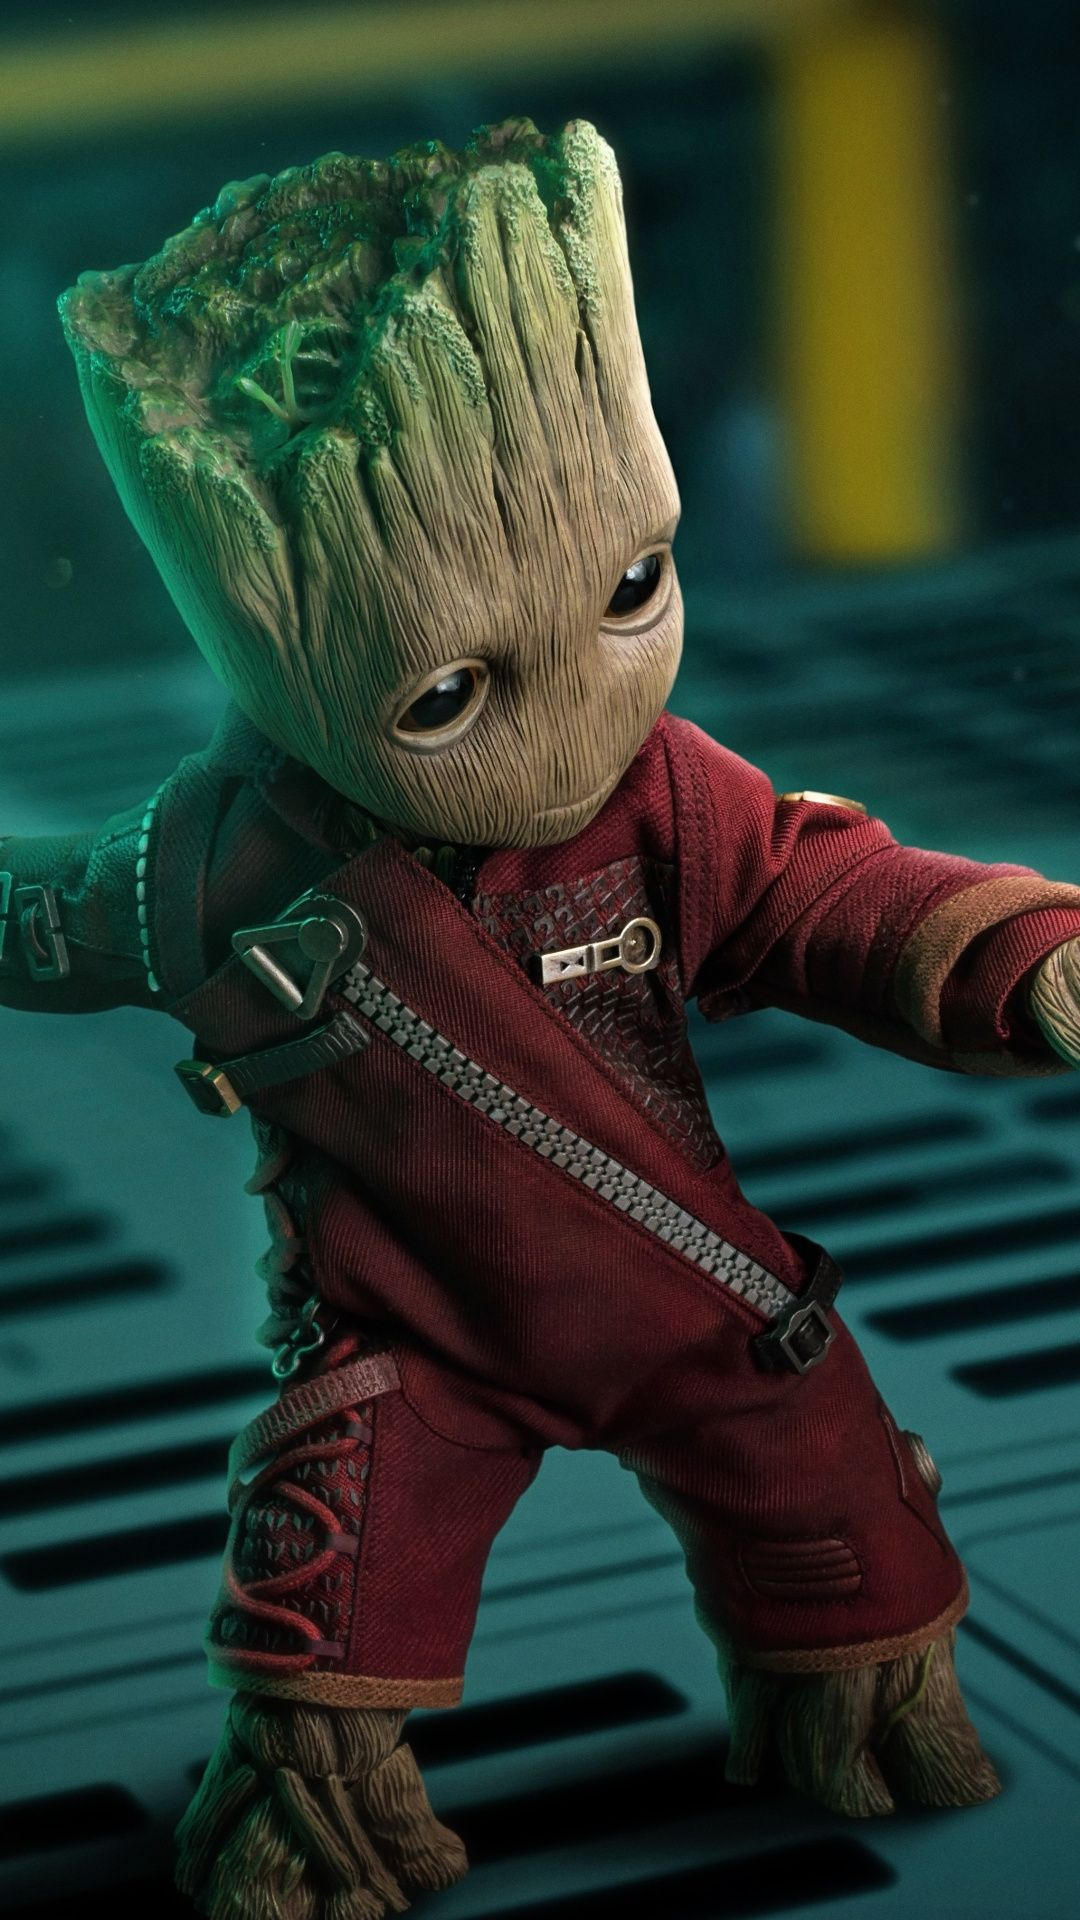 Baby Groot Guardians Of The Galaxy Marvel Toy Art Wallpaper